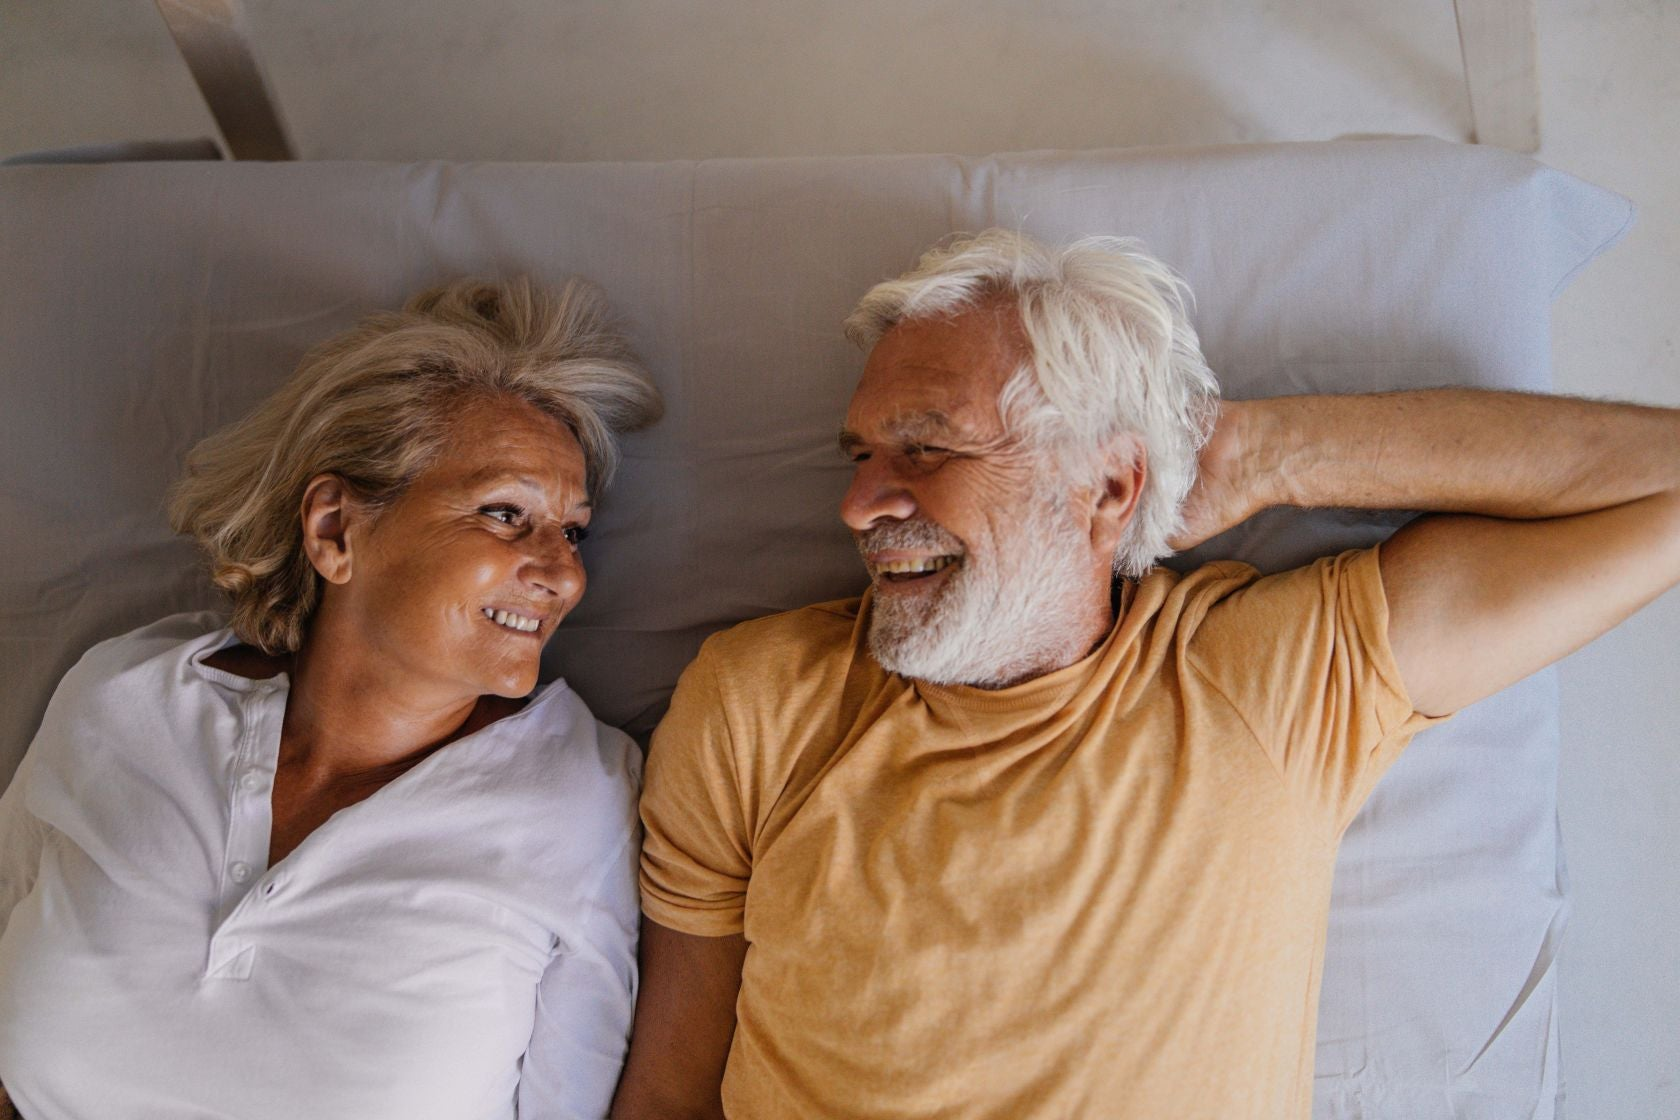 How can I be intimate with my partner when dealing with incontinence?